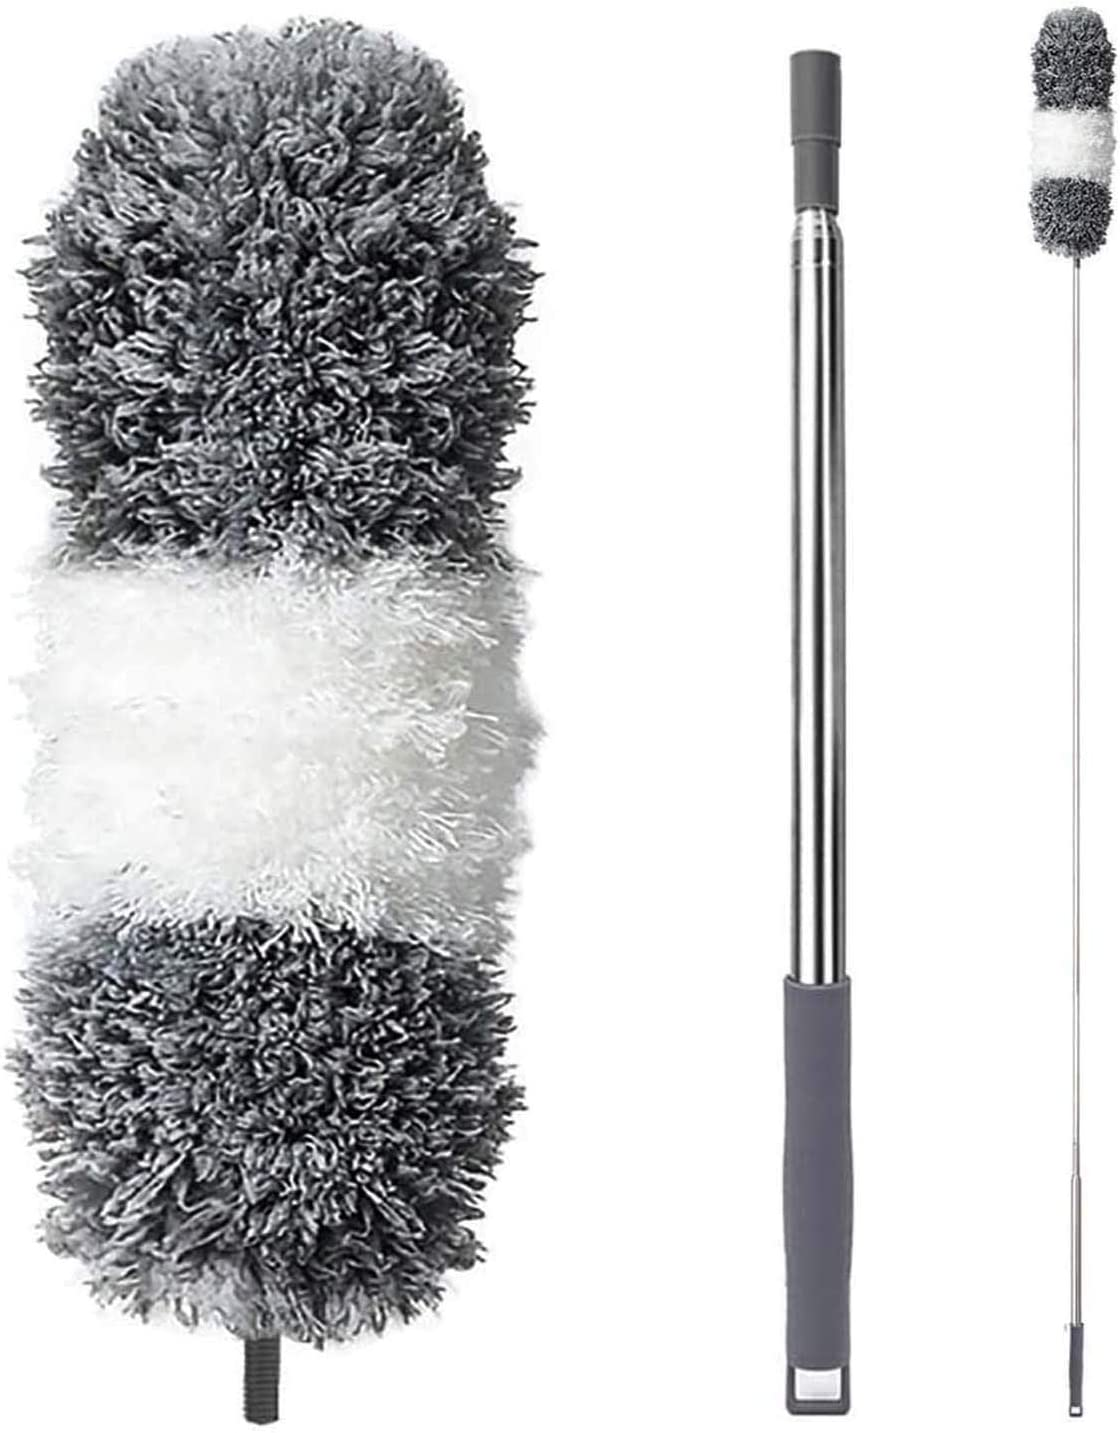 50% Off Coupon – Cleaning Microfiber Duster